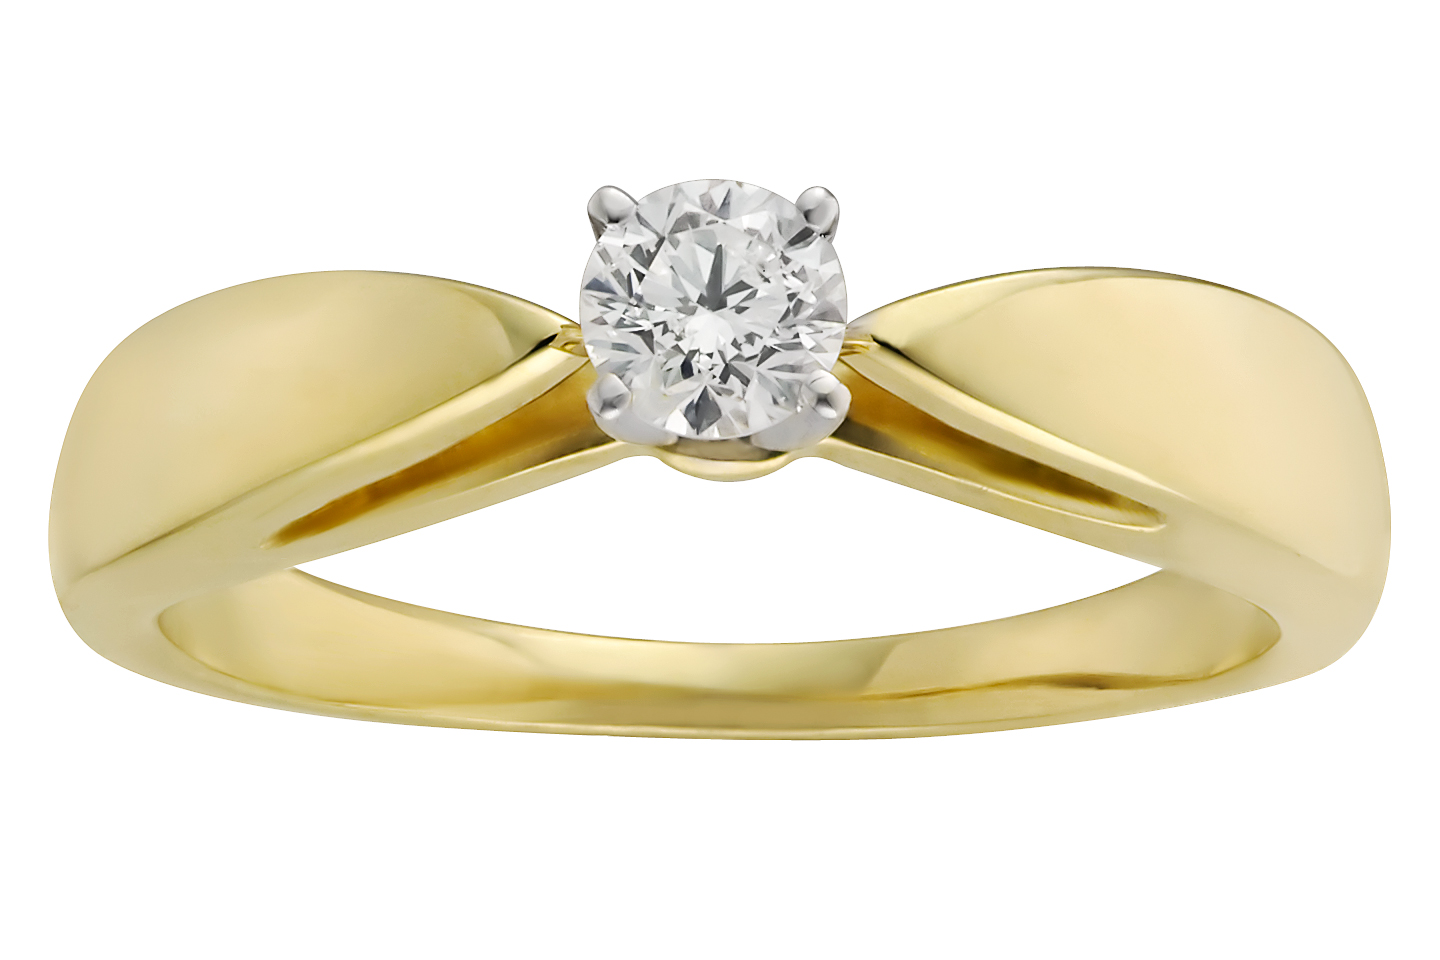 Black Hills Gold Wedding Rings - Wedding Ring